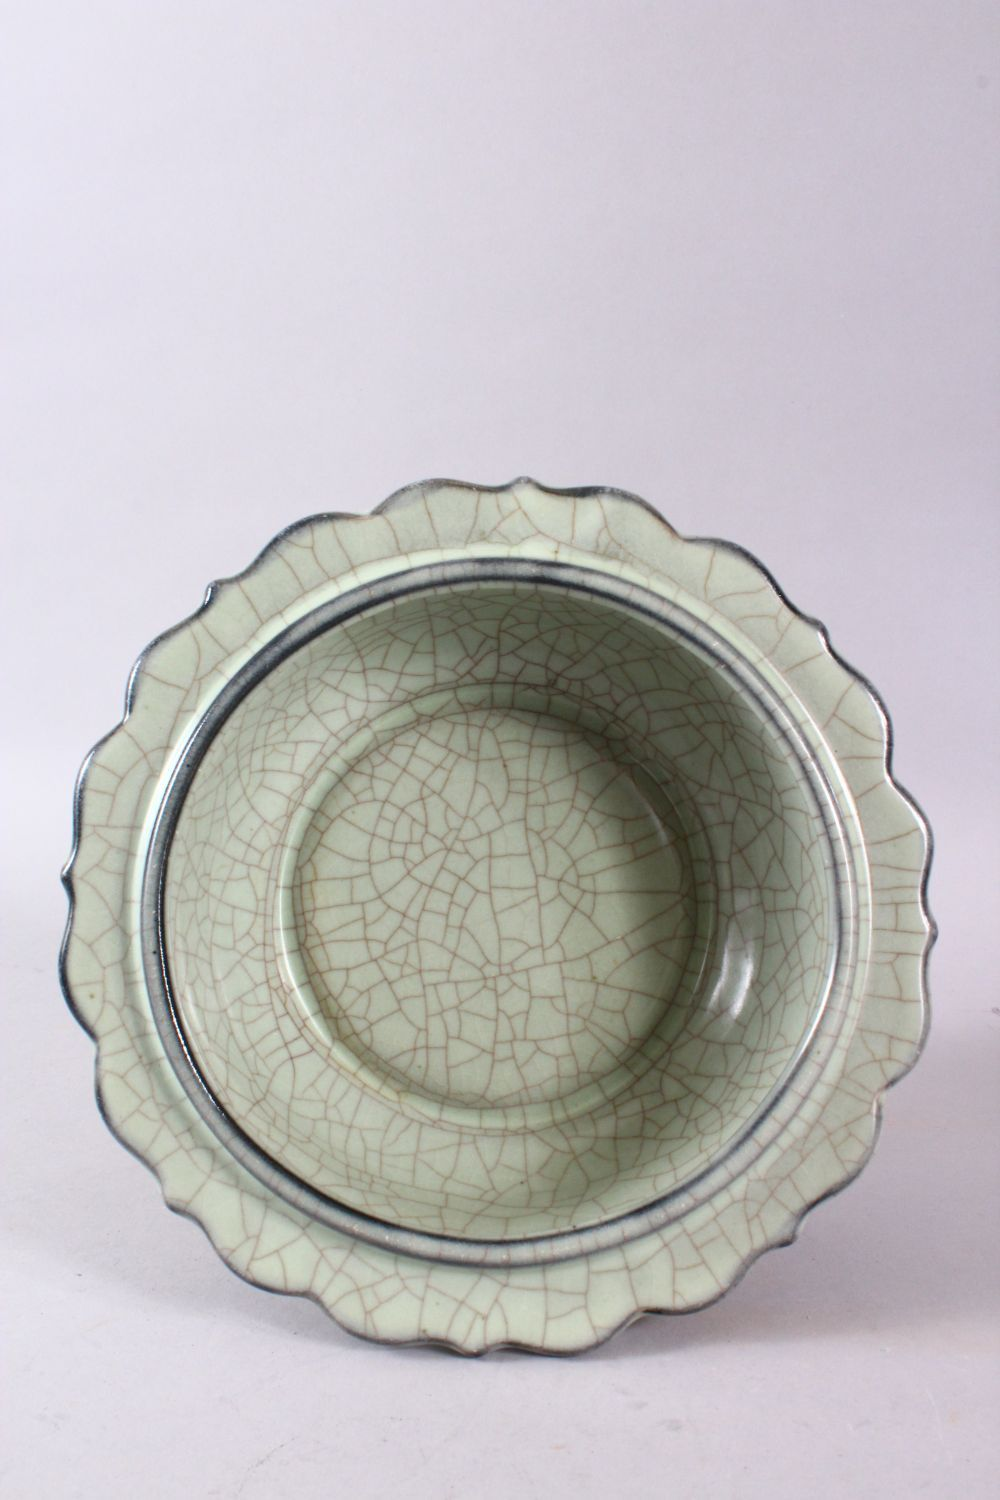 A CHINESE BARBED RIM GUAN GLAZED POTTERY DISH, the flared rim with ironwire style body decoration, - Image 2 of 3